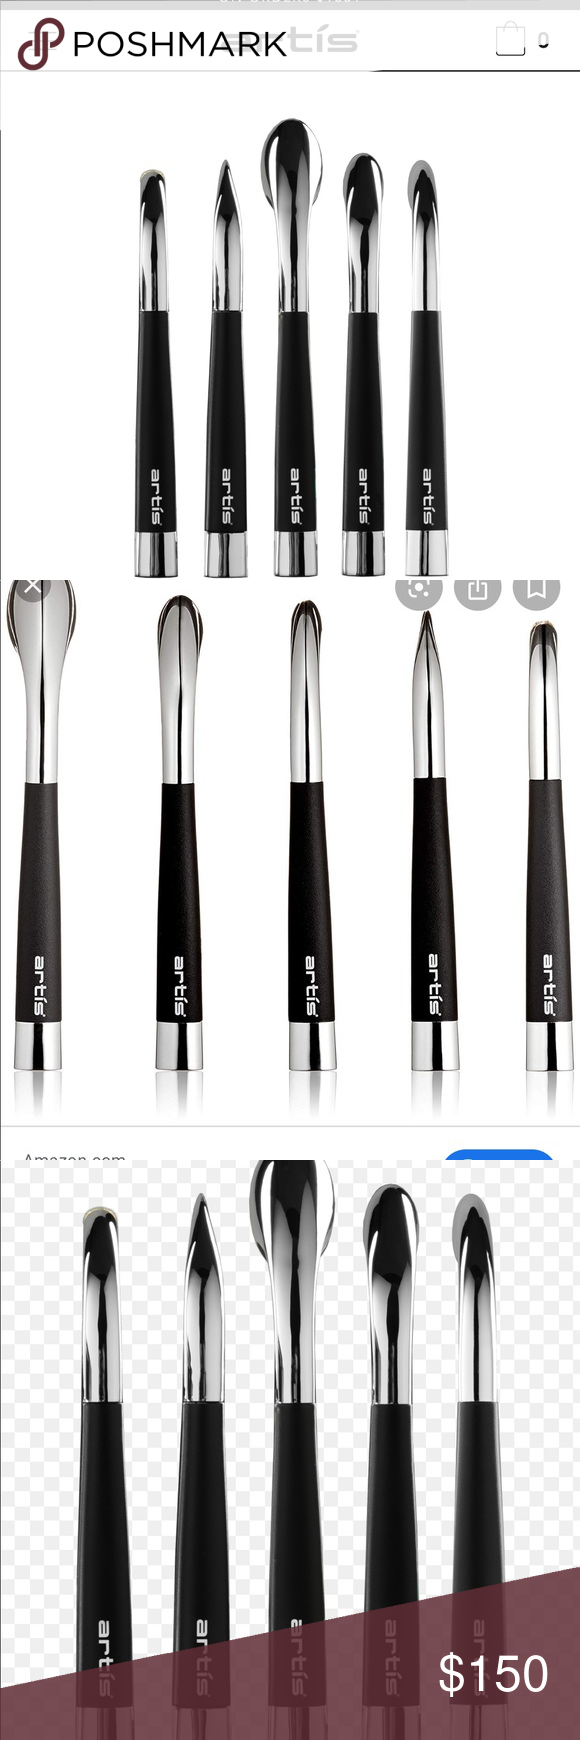 Brand New! Artis Fluenta Collection 5 set brushes